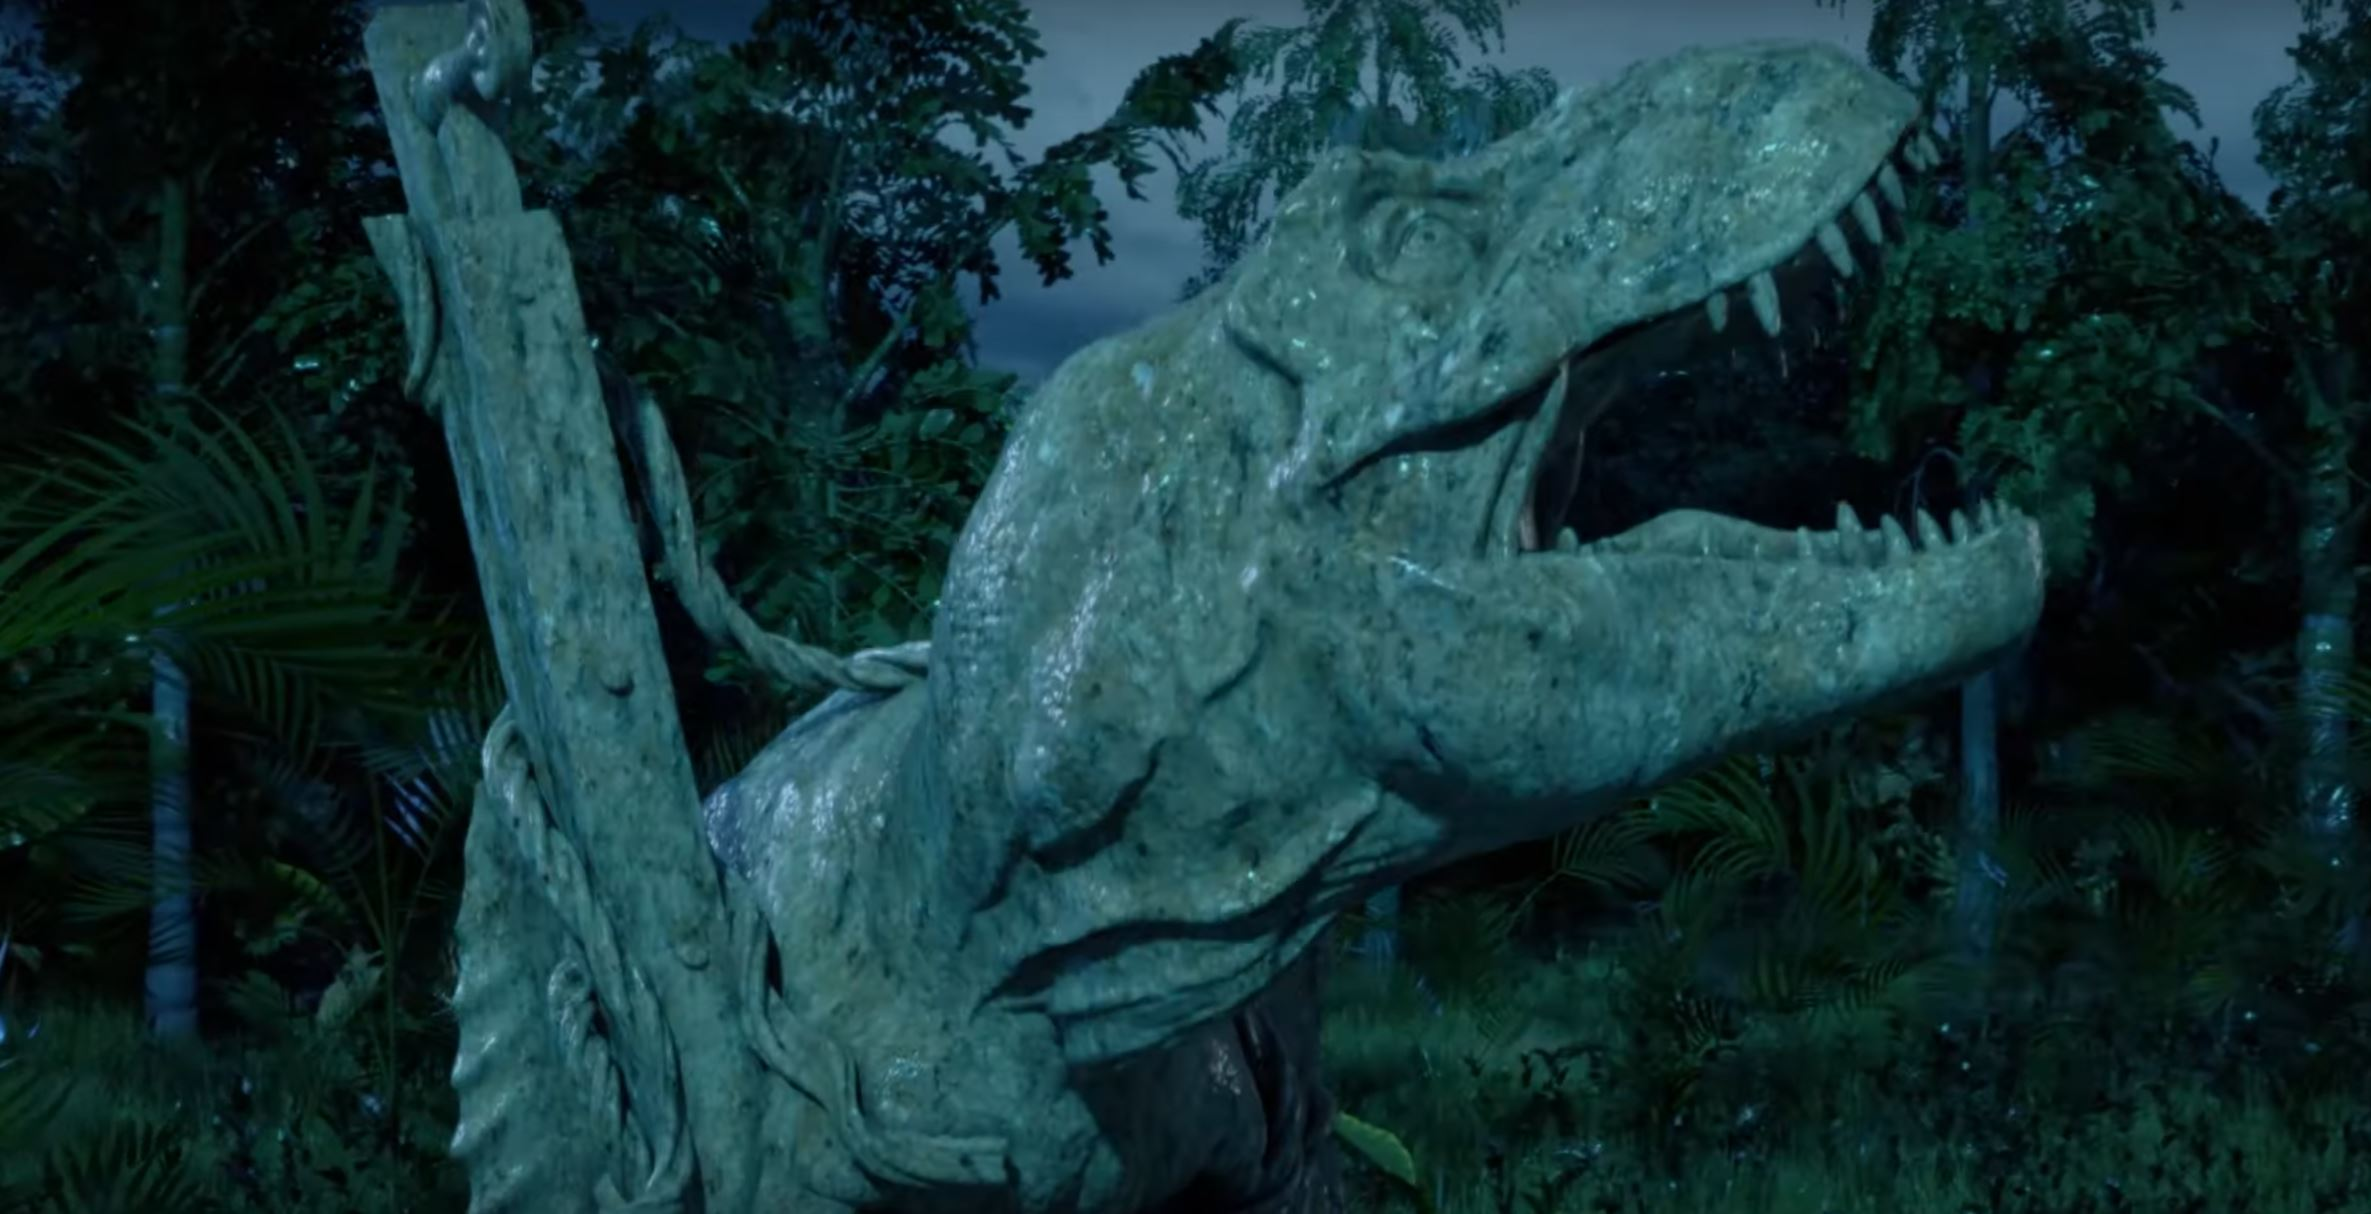 A still frame from the teaser trailer for Funko Games' Jurassic Park legacy title.